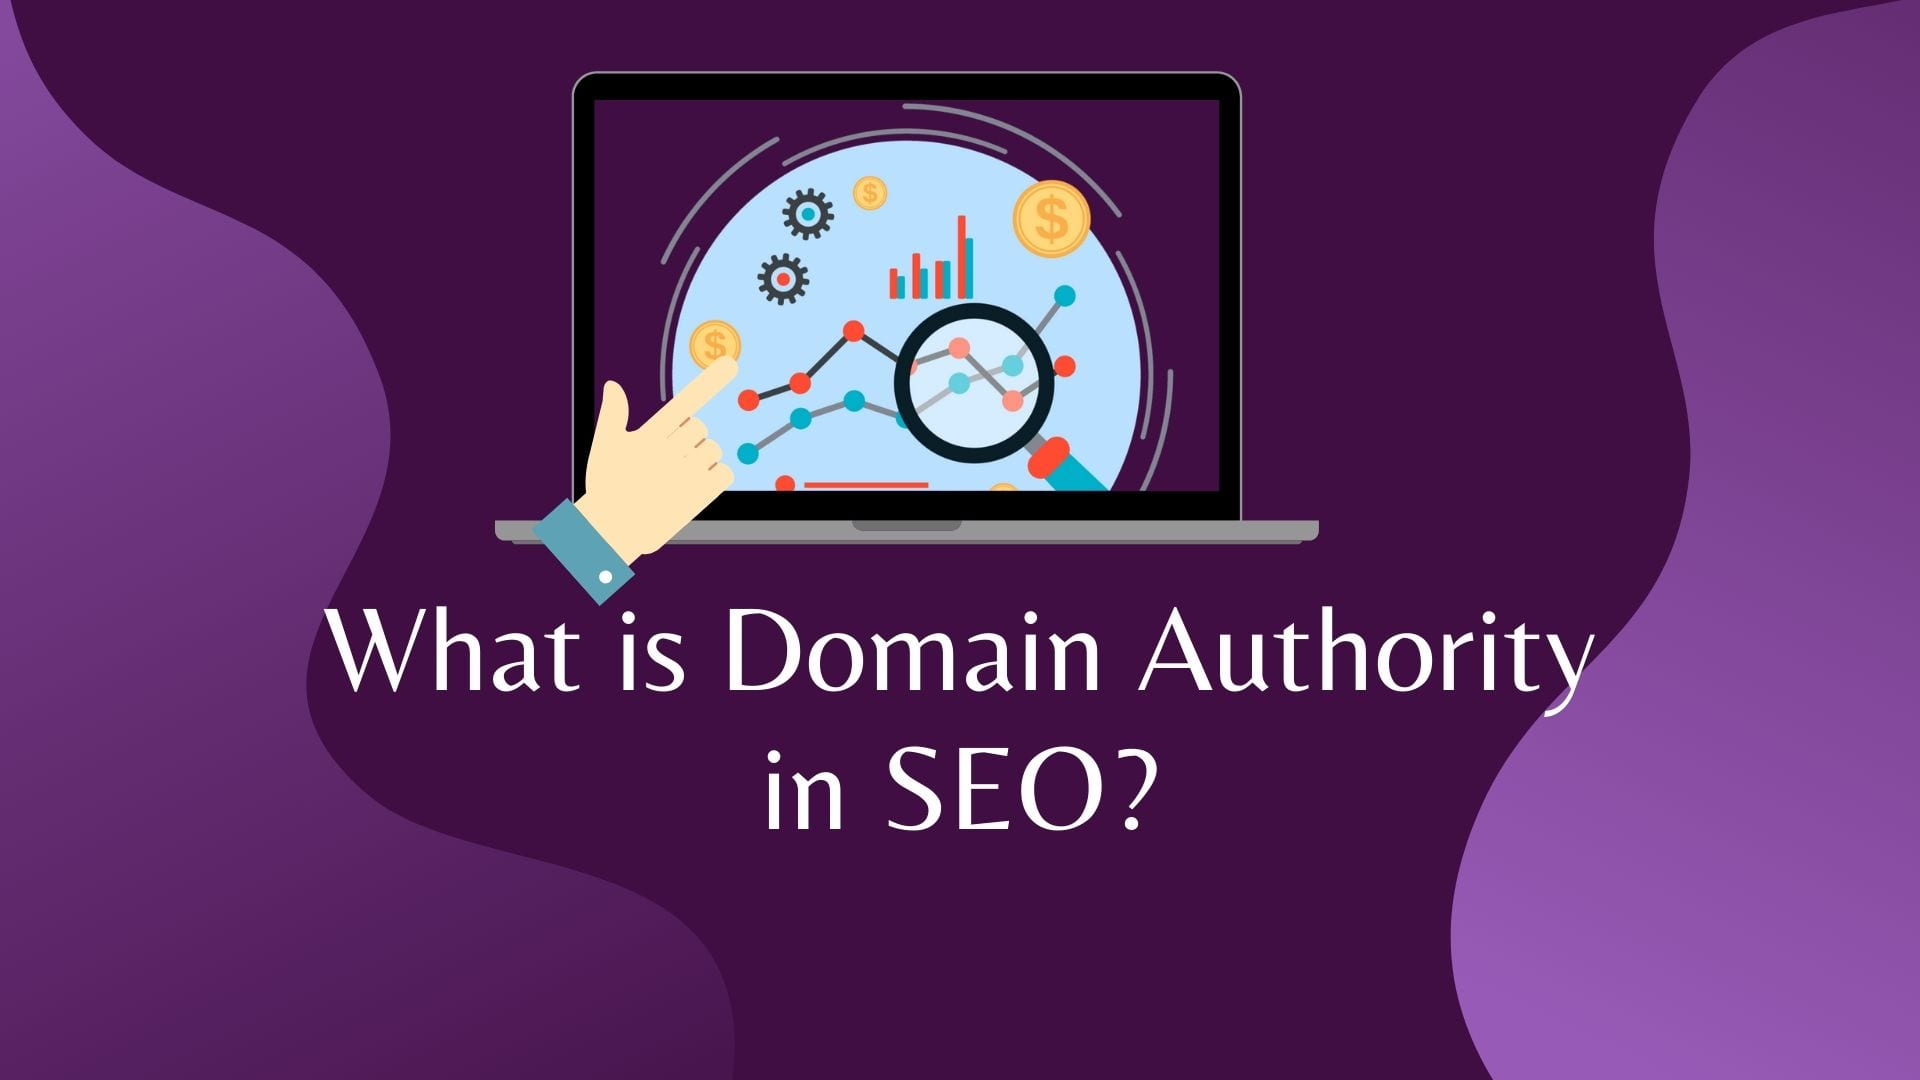 What is Domain Authority in SEO?